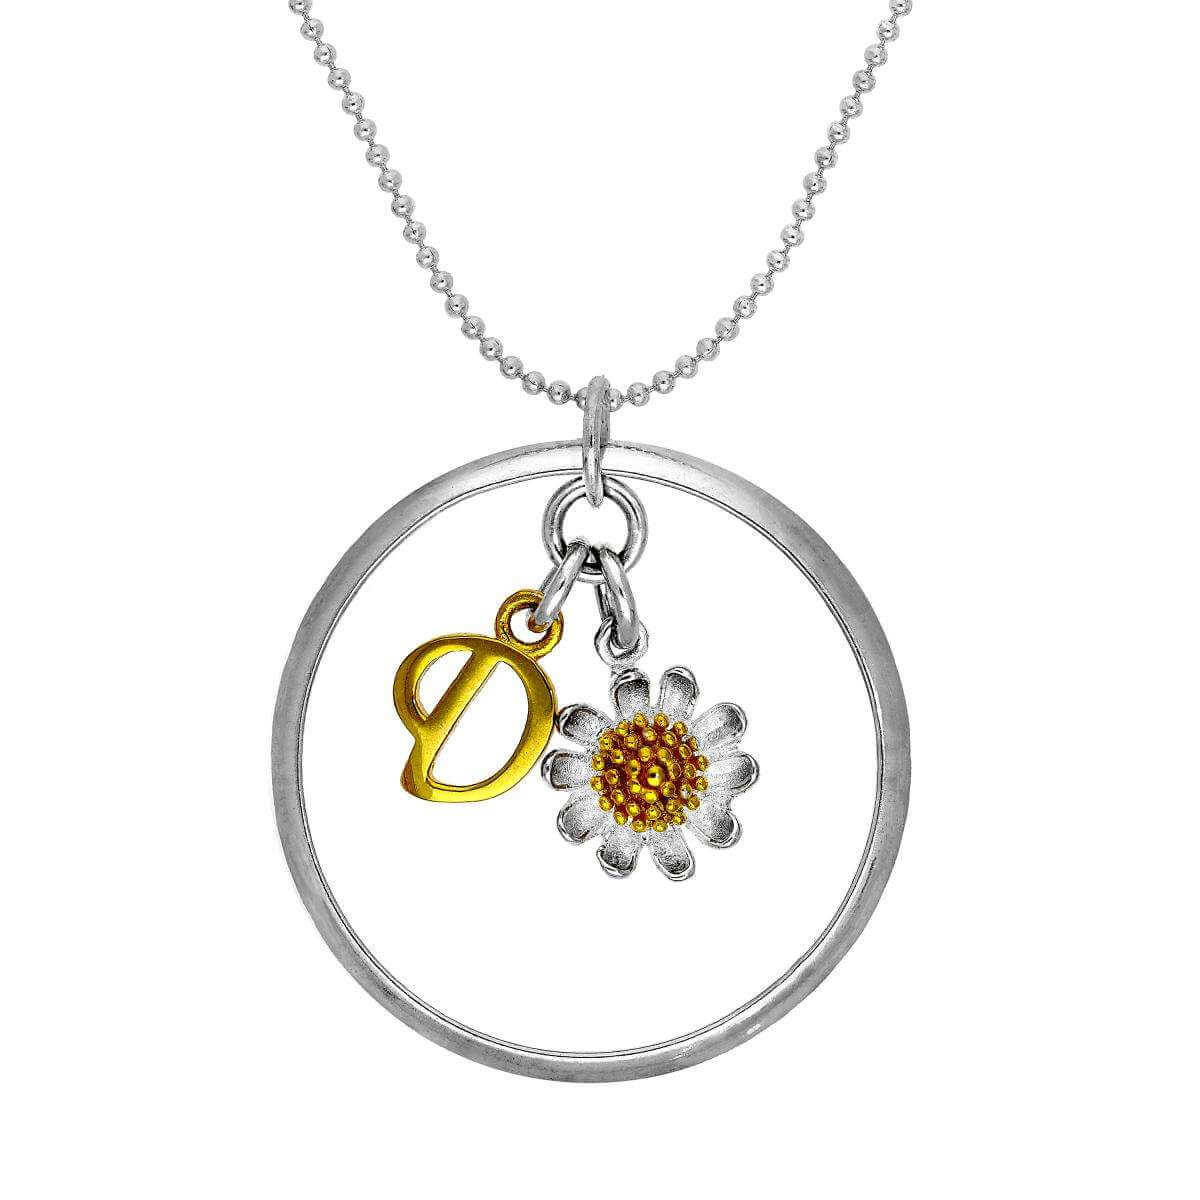 Gold Plated Sterling Silver Karma Moments Daisy & Initial Letter Pendant on Bead Chain Necklace